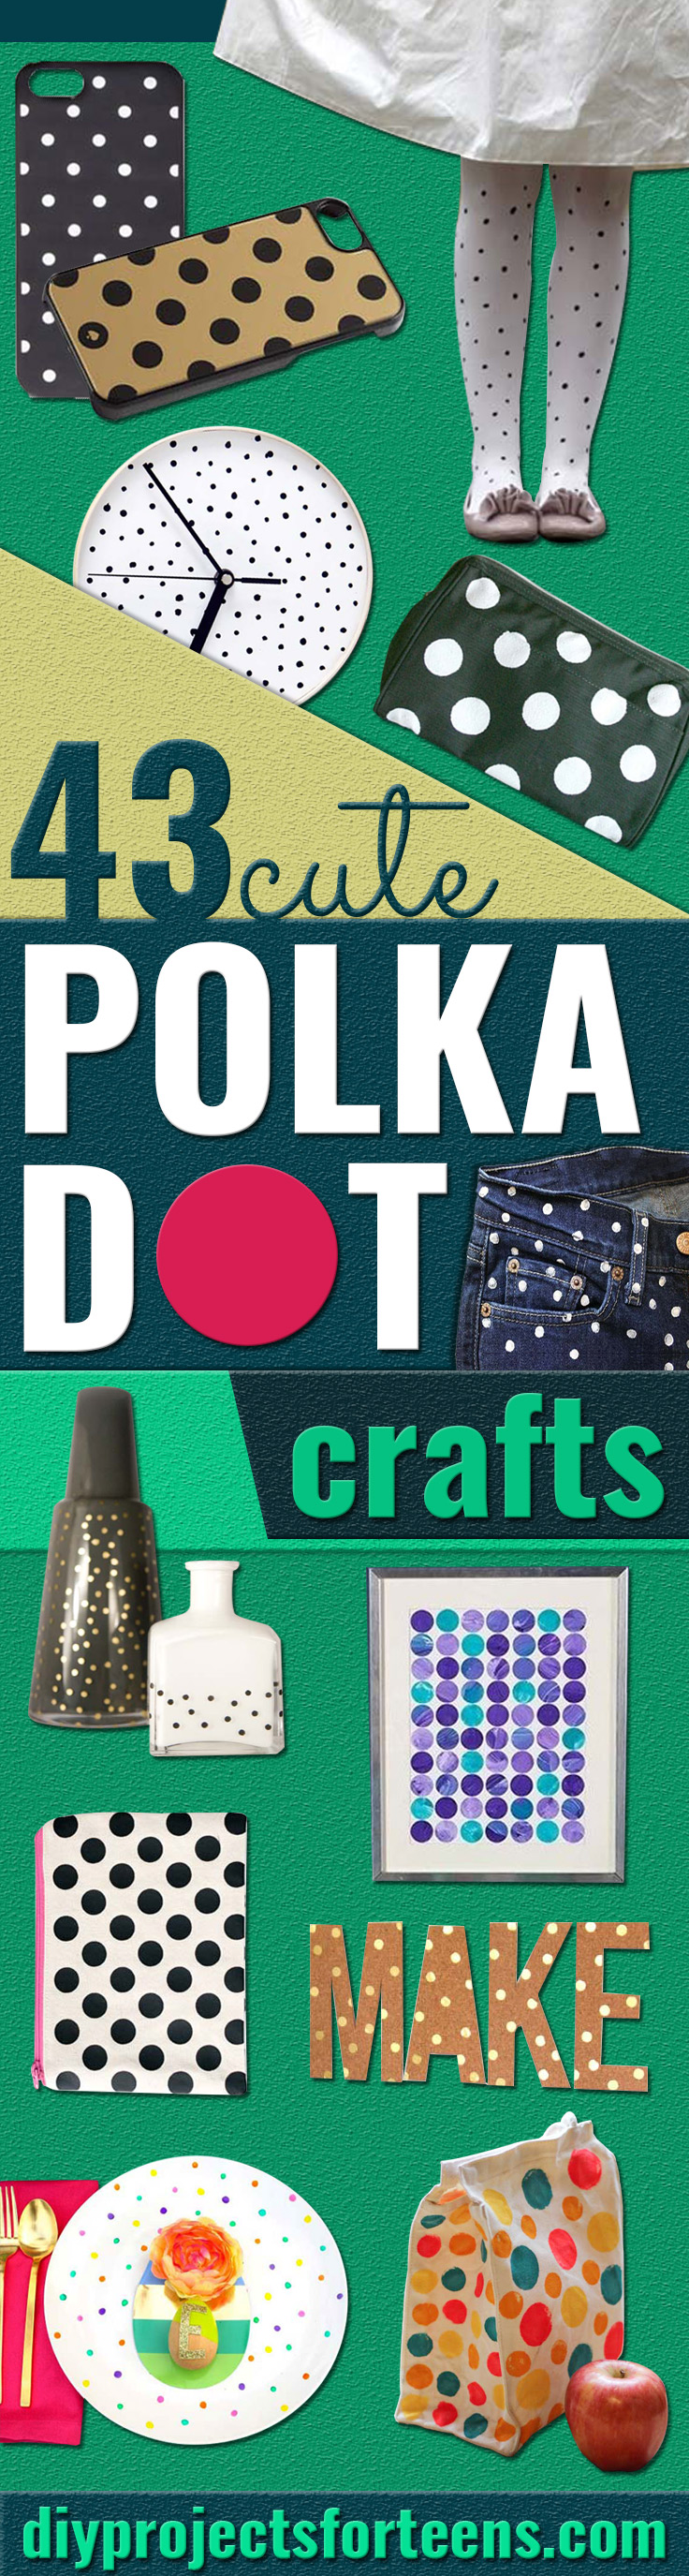 DIY Polka Dot Crafts and Projects - Cool Clothes, Room and Home Decor, Wall Art, Mason Jars and Party Ideas, Canvas, Fabric and Paint Project Tutorials - Fun Craft Ideas for Teens, Kids and Adults Make Awesome DIY Gifts